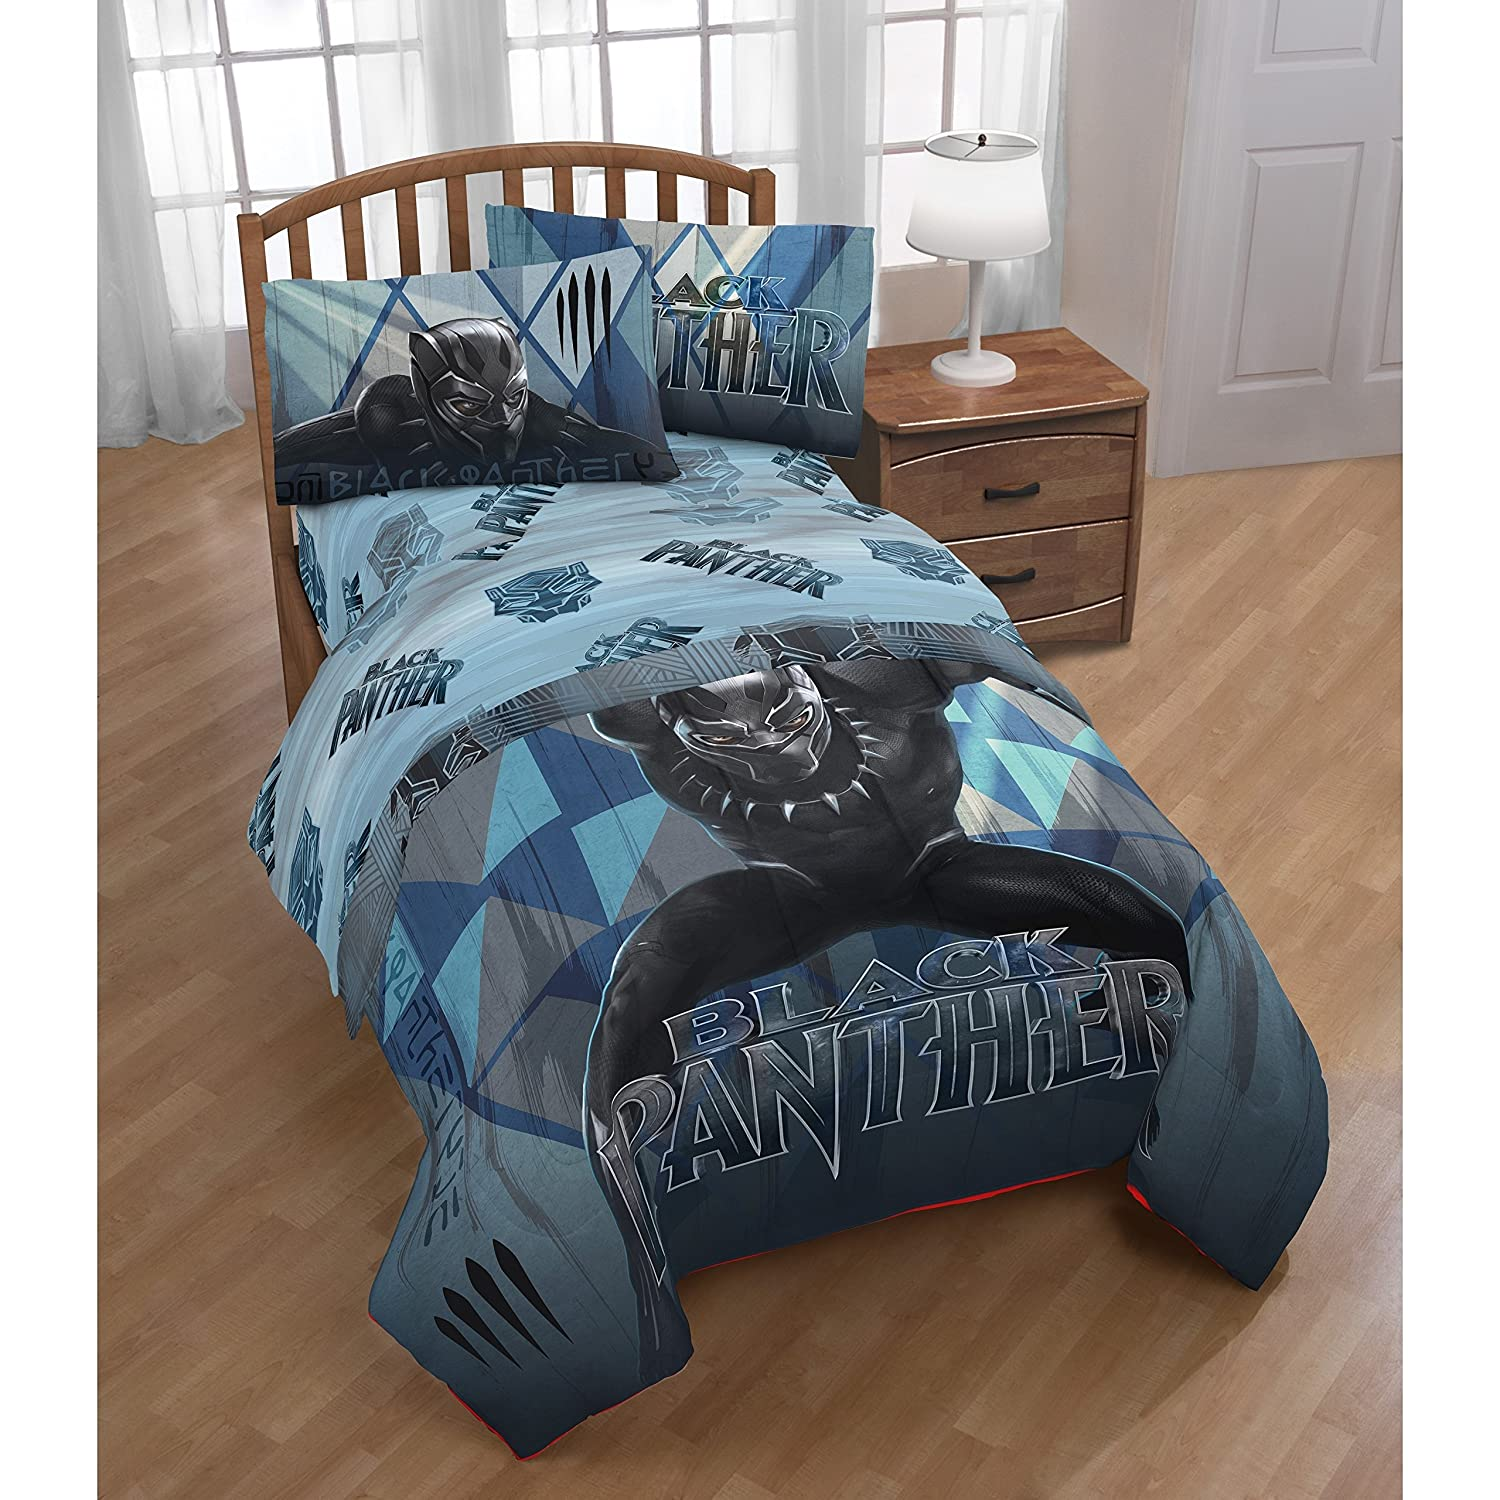 1 Piece Boys Blue Grey Black Panther Themed Comforter Twin Size, Black Marvel Super Hero Print Reversible Bedding Comic Superheroes Pattern, Bold Iconic Design, Vibrant Colors, Soft Plush Polyester